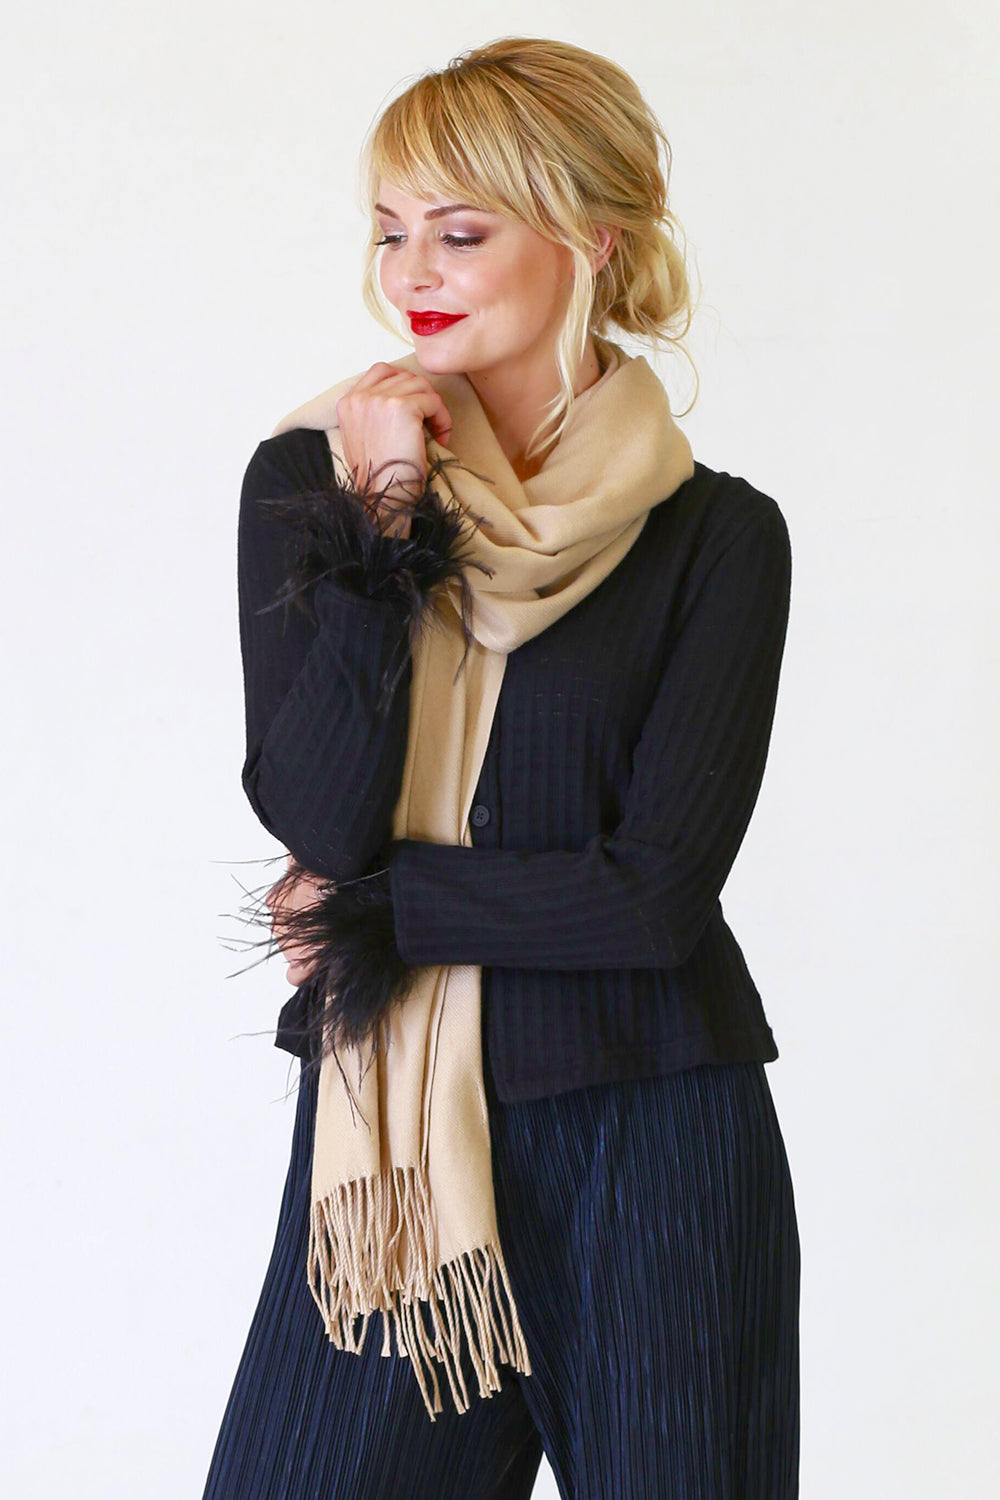 Perrie Scarf, Accessory, NZ Fashion, Annah Stretton Fashion